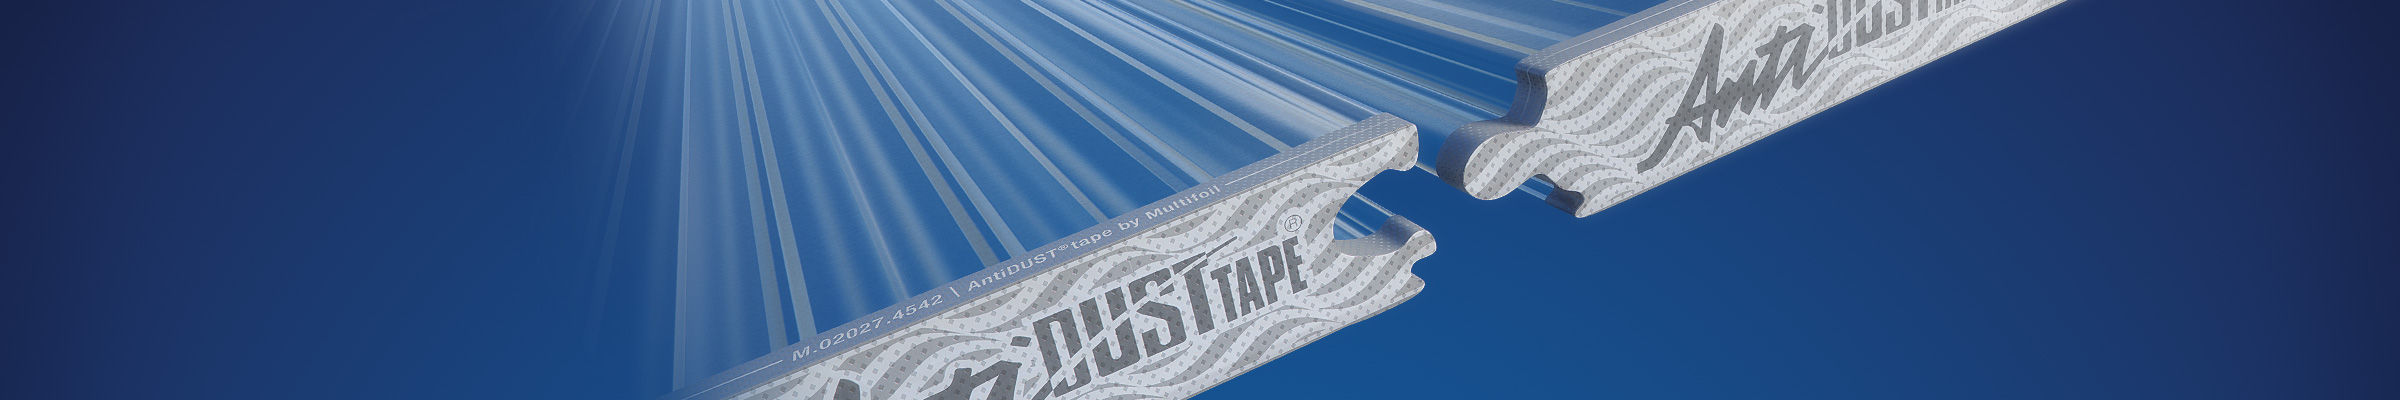 Tape for polycarbonate click systems